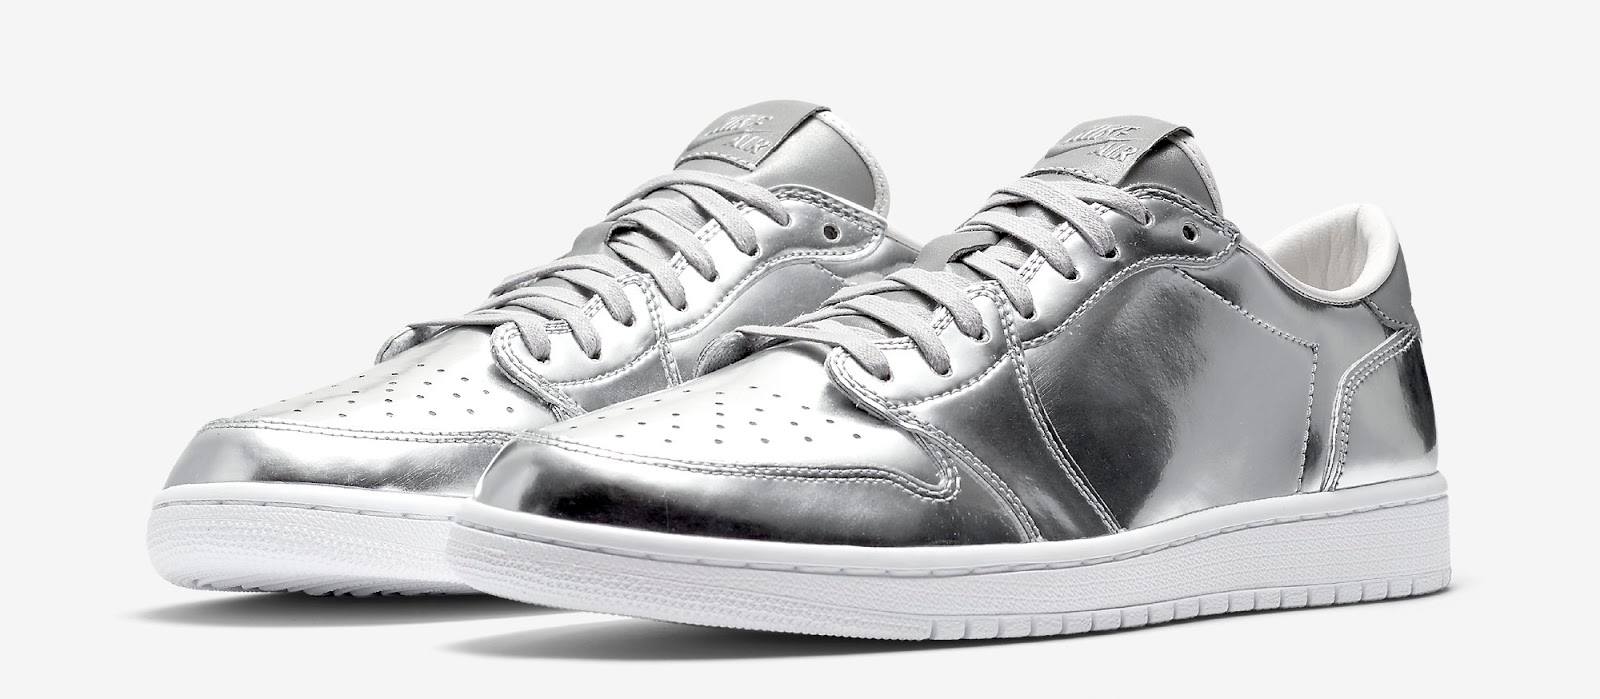 14e0eeef2f00 Air Jordan 1 Retro Low OG Pinnacle Metallic Silver White Release Reminder